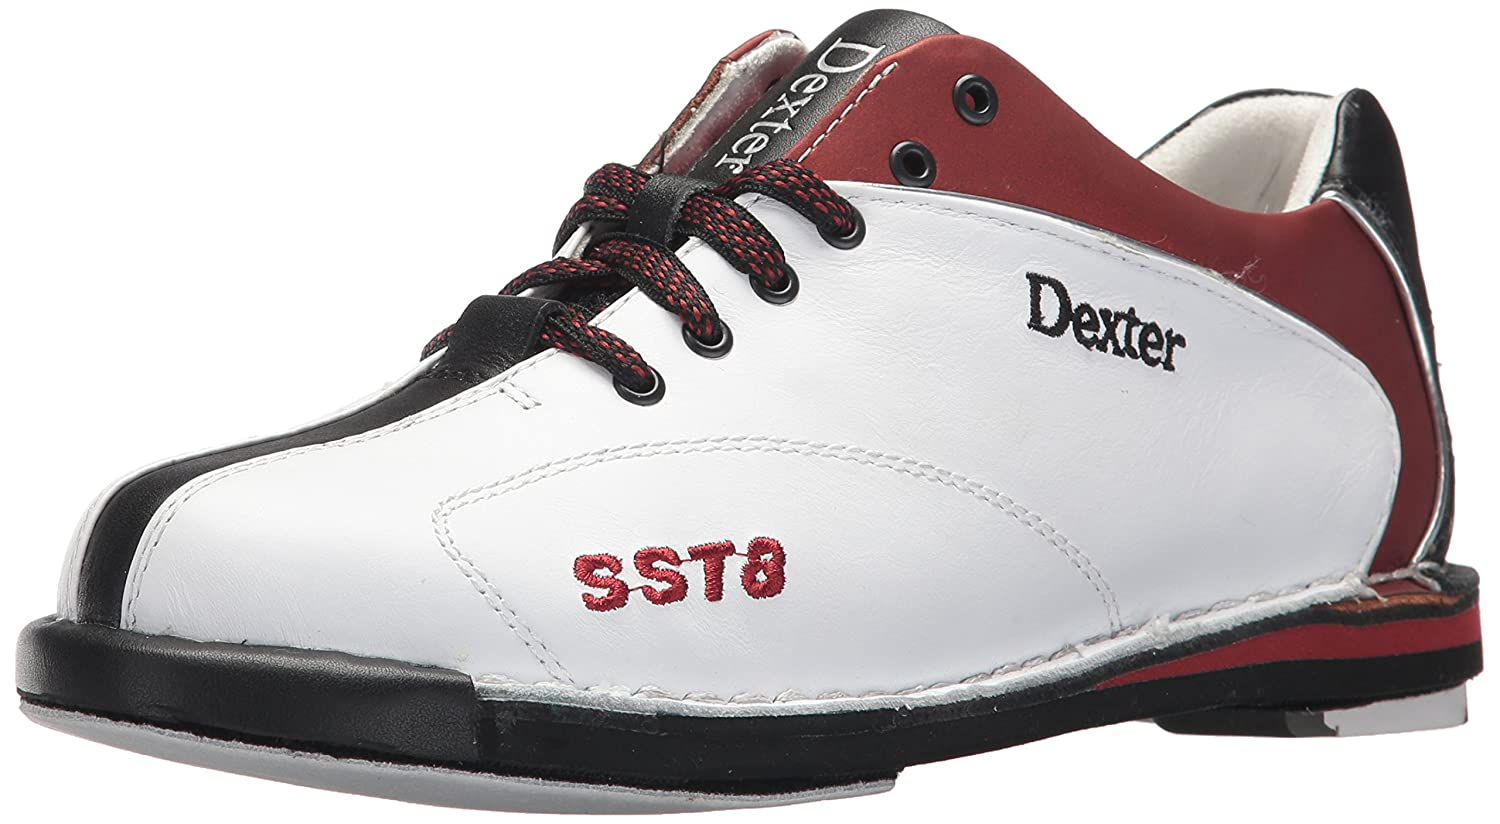 Dexter Women's SST 8 LE Bowling Shoes ace mitchell 1001-9-P